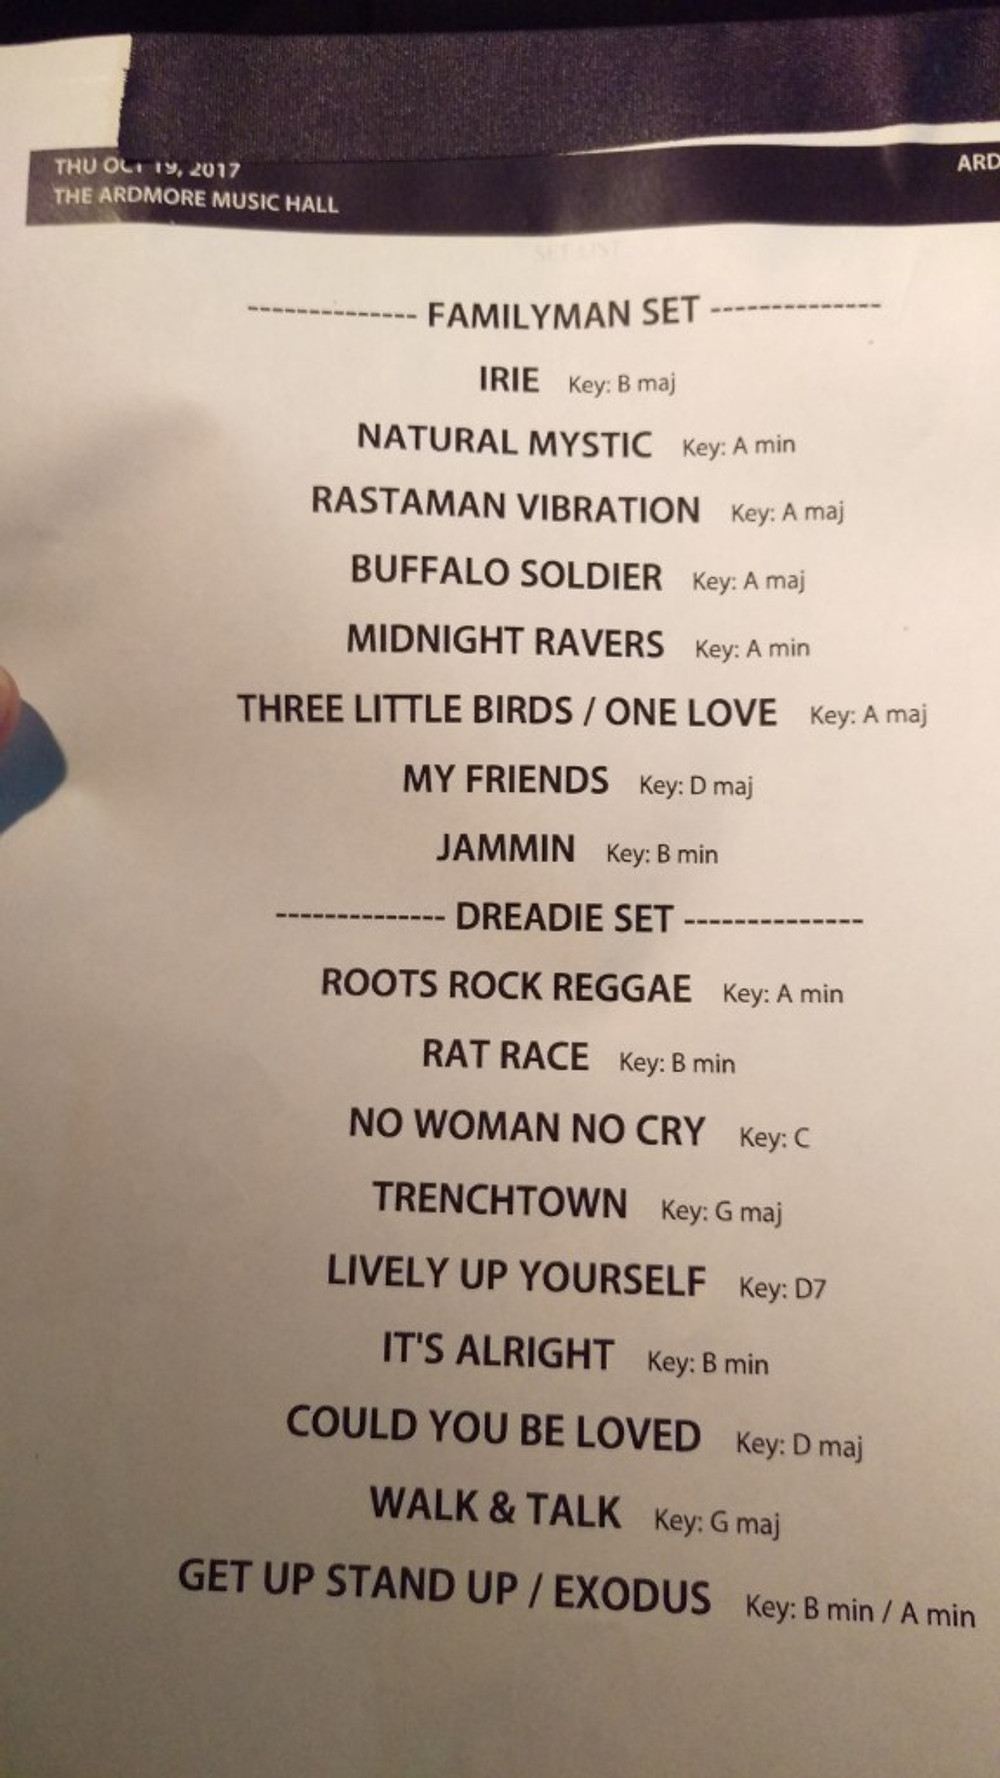 A picture of the set list from the show.